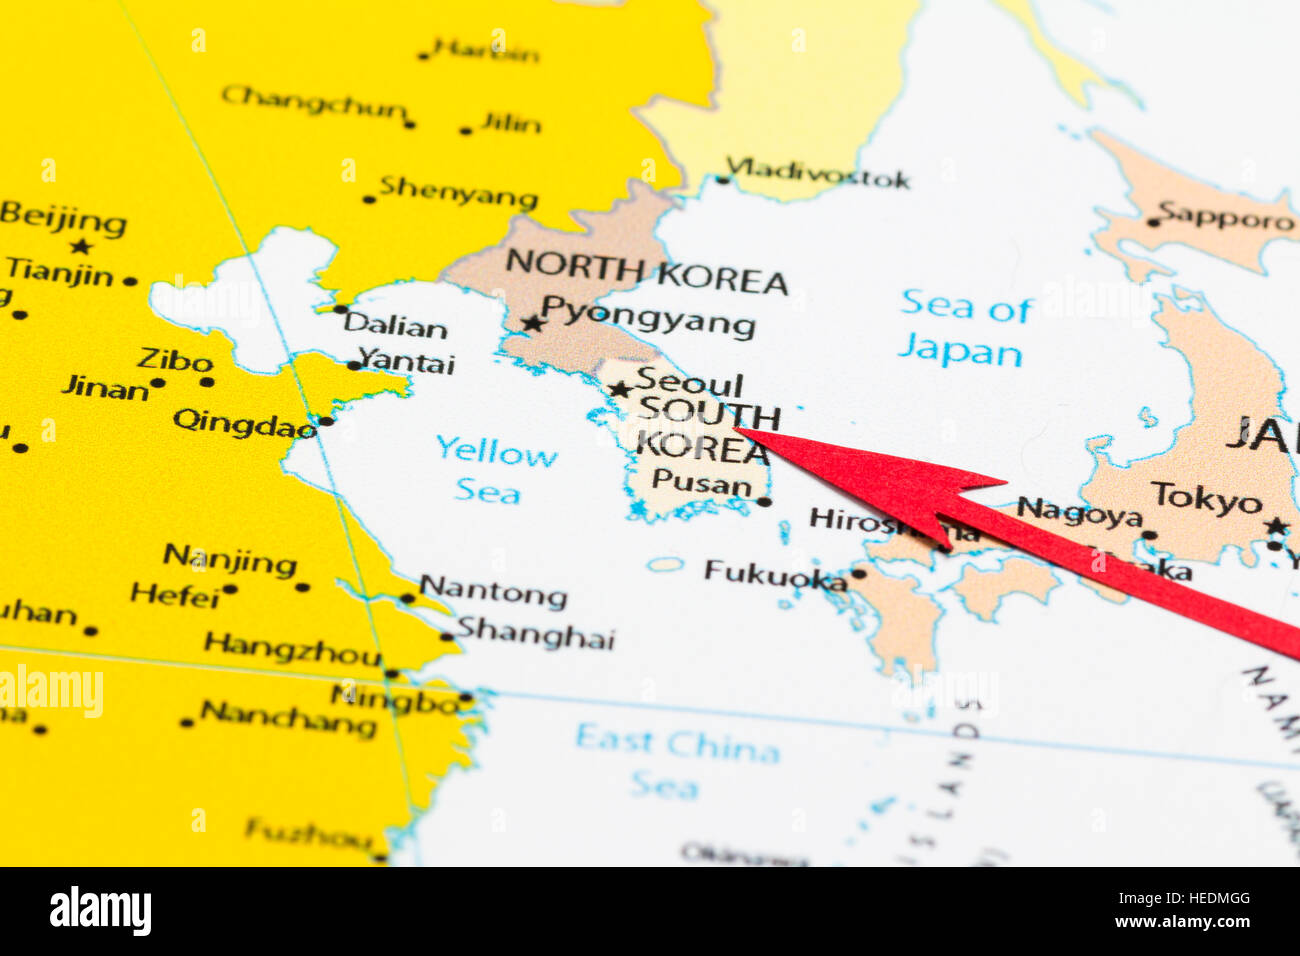 Red arrow pointing South Korea on the map of Asia continent Stock